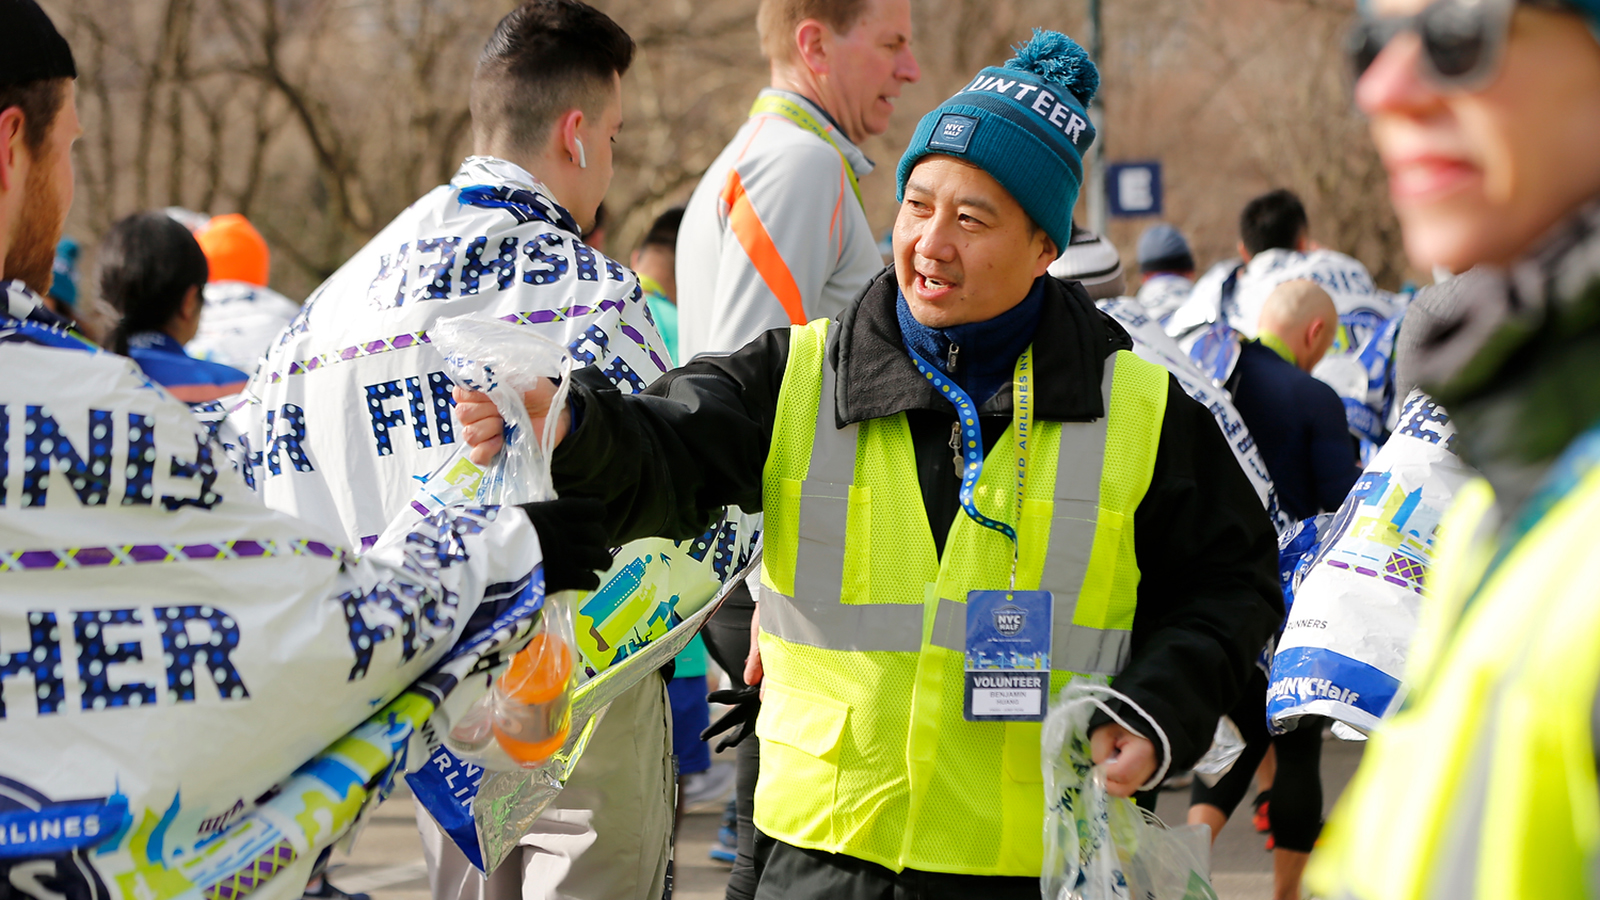 A volunteer handing out recovery bags at the finish of the United Airlines NYC Half